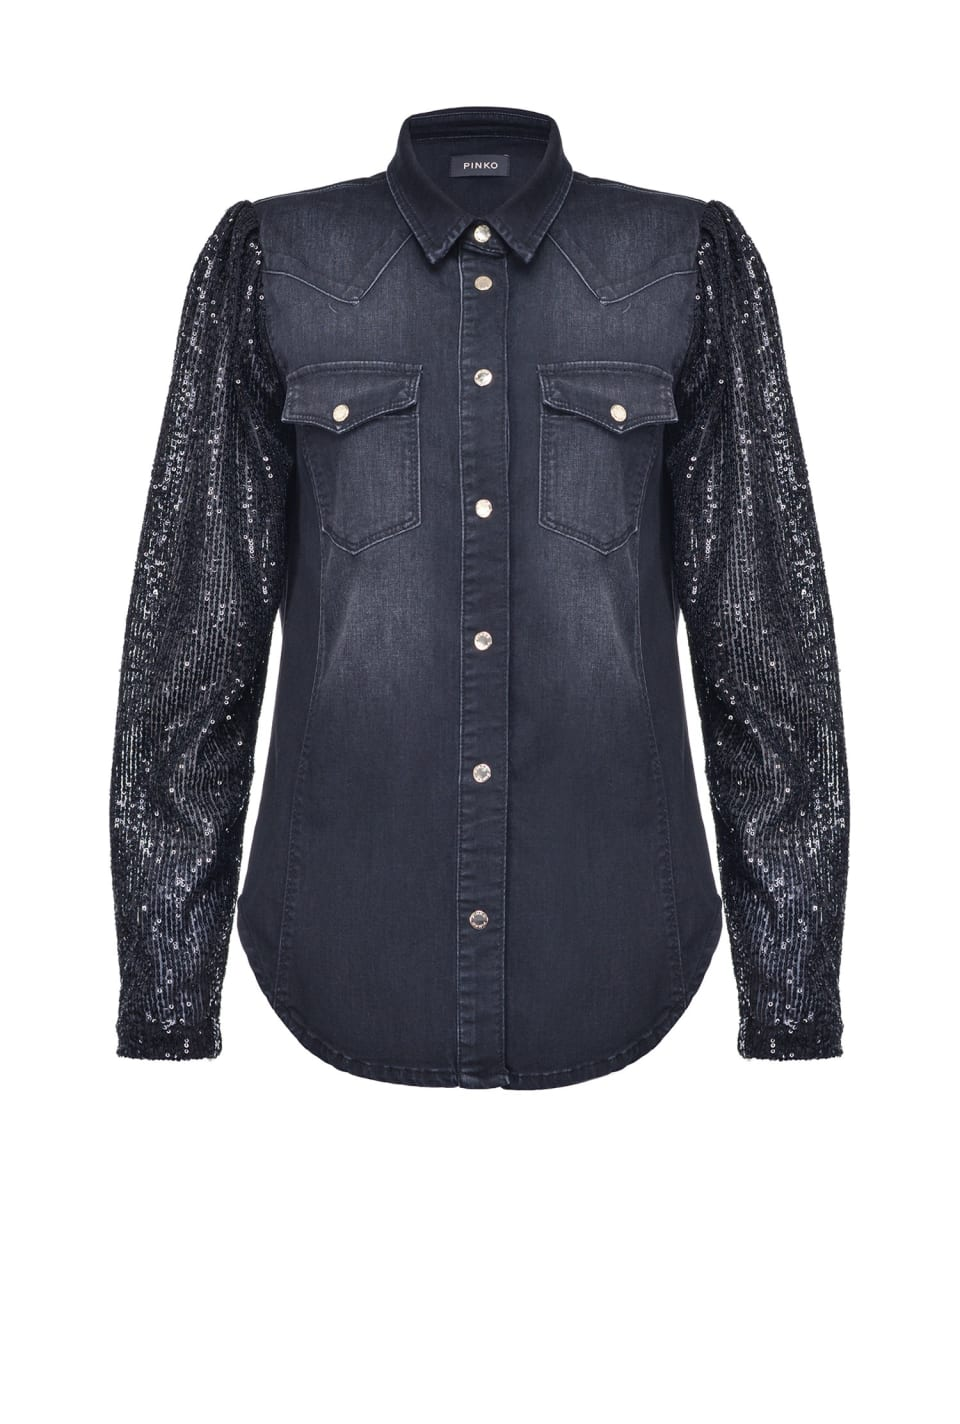 Camicia in denim con maniche in paillettes - Pinko